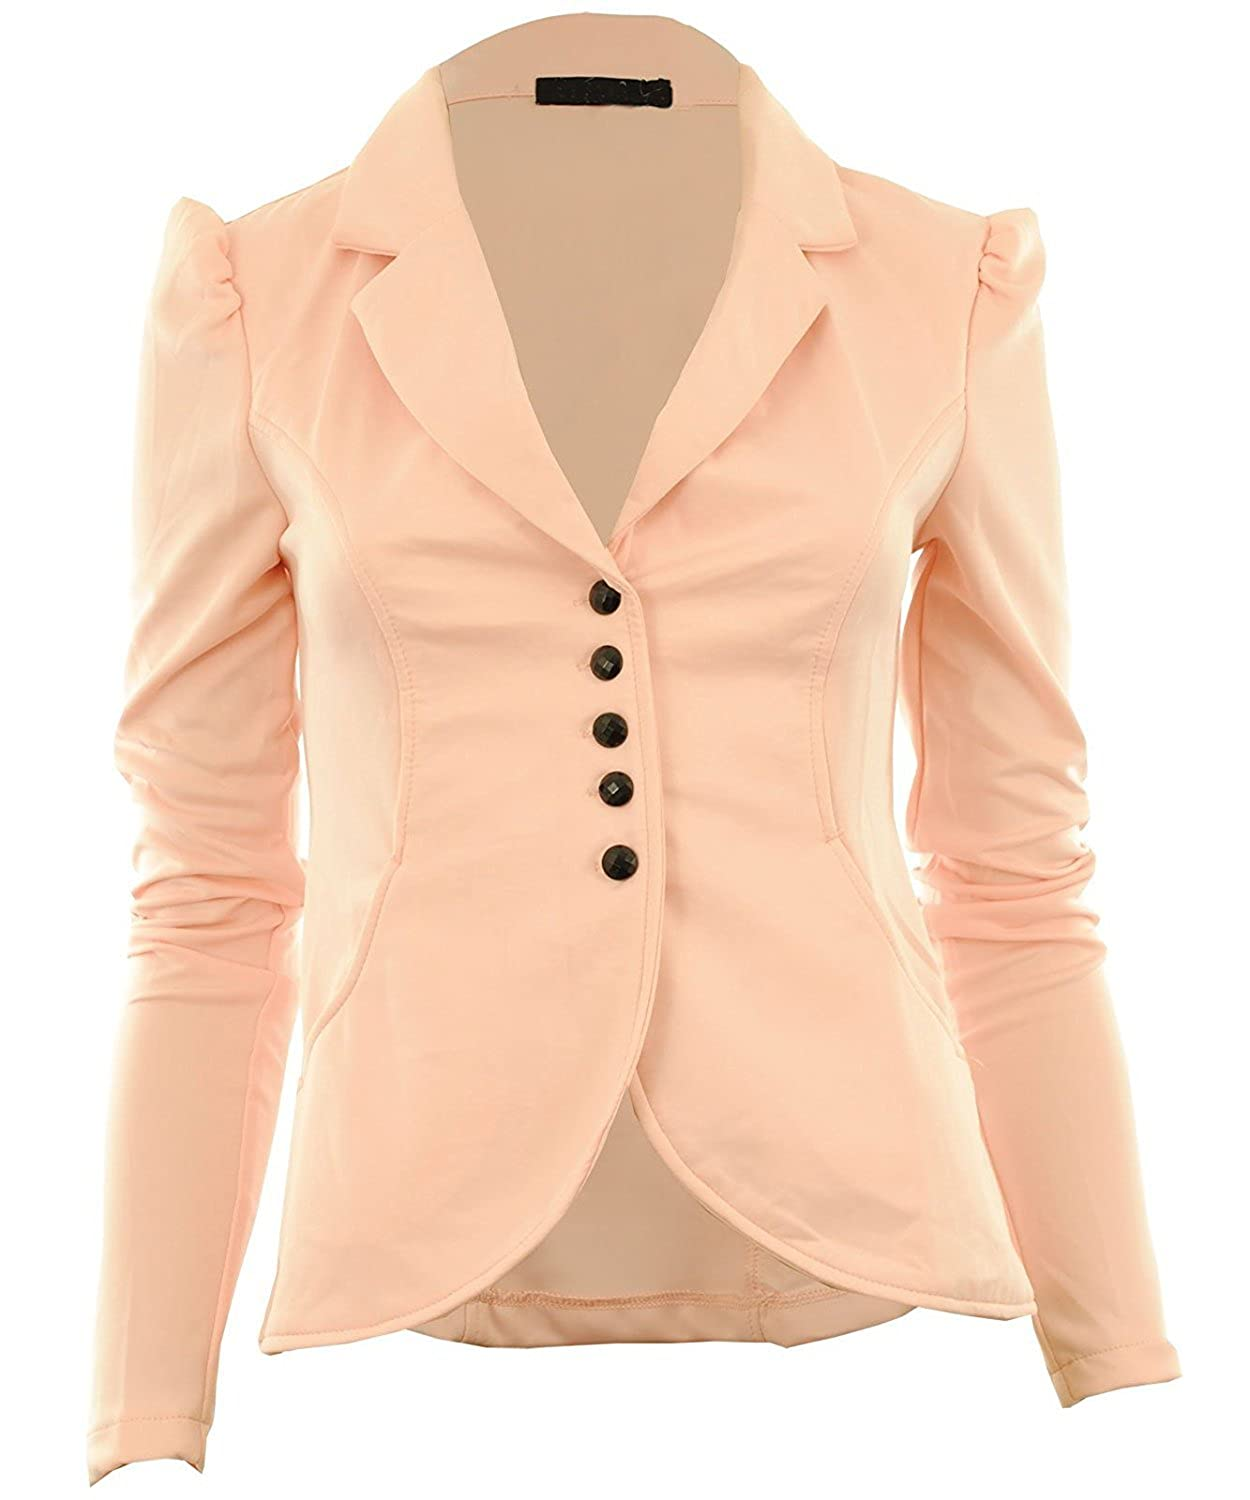 fcb45aa5e Coats, Jackets & Vests New Womens 5 Five Button Front Ponte Bold ...